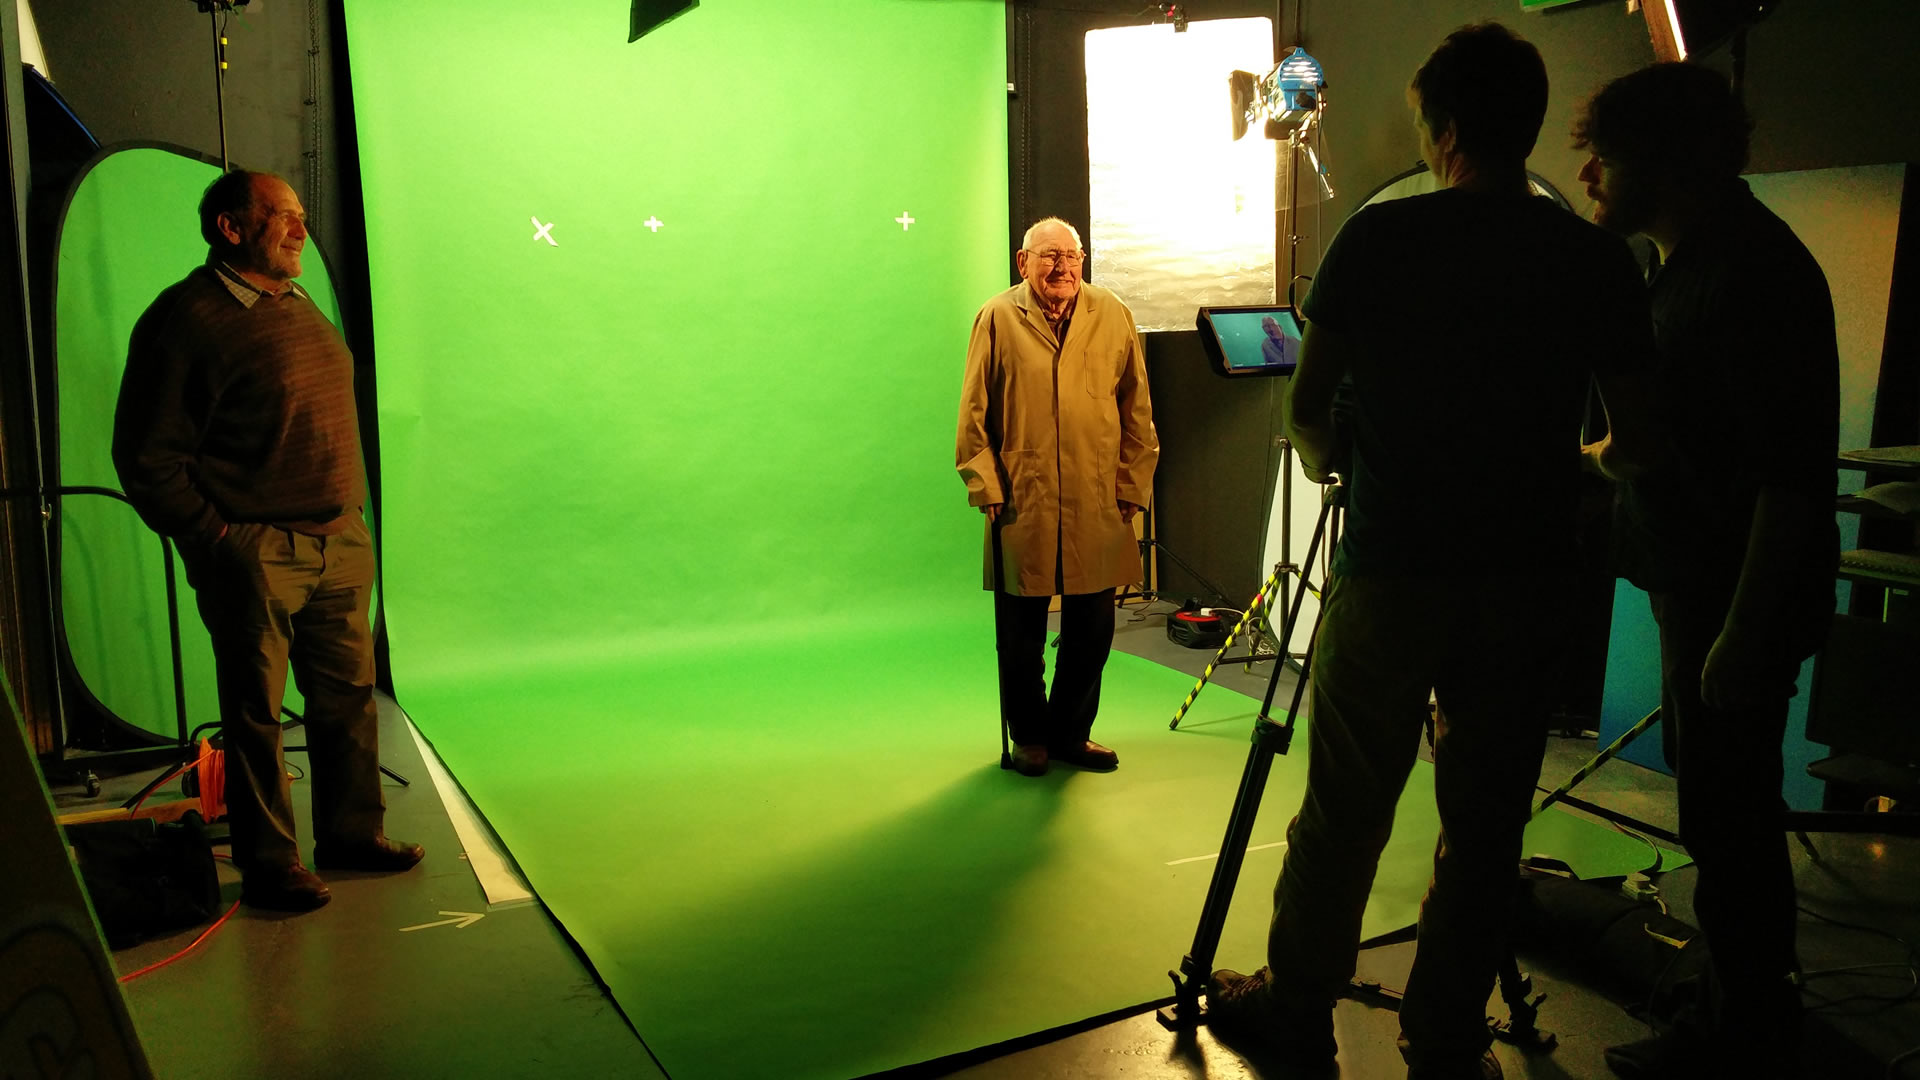 Bob Fulton in front of the green screen